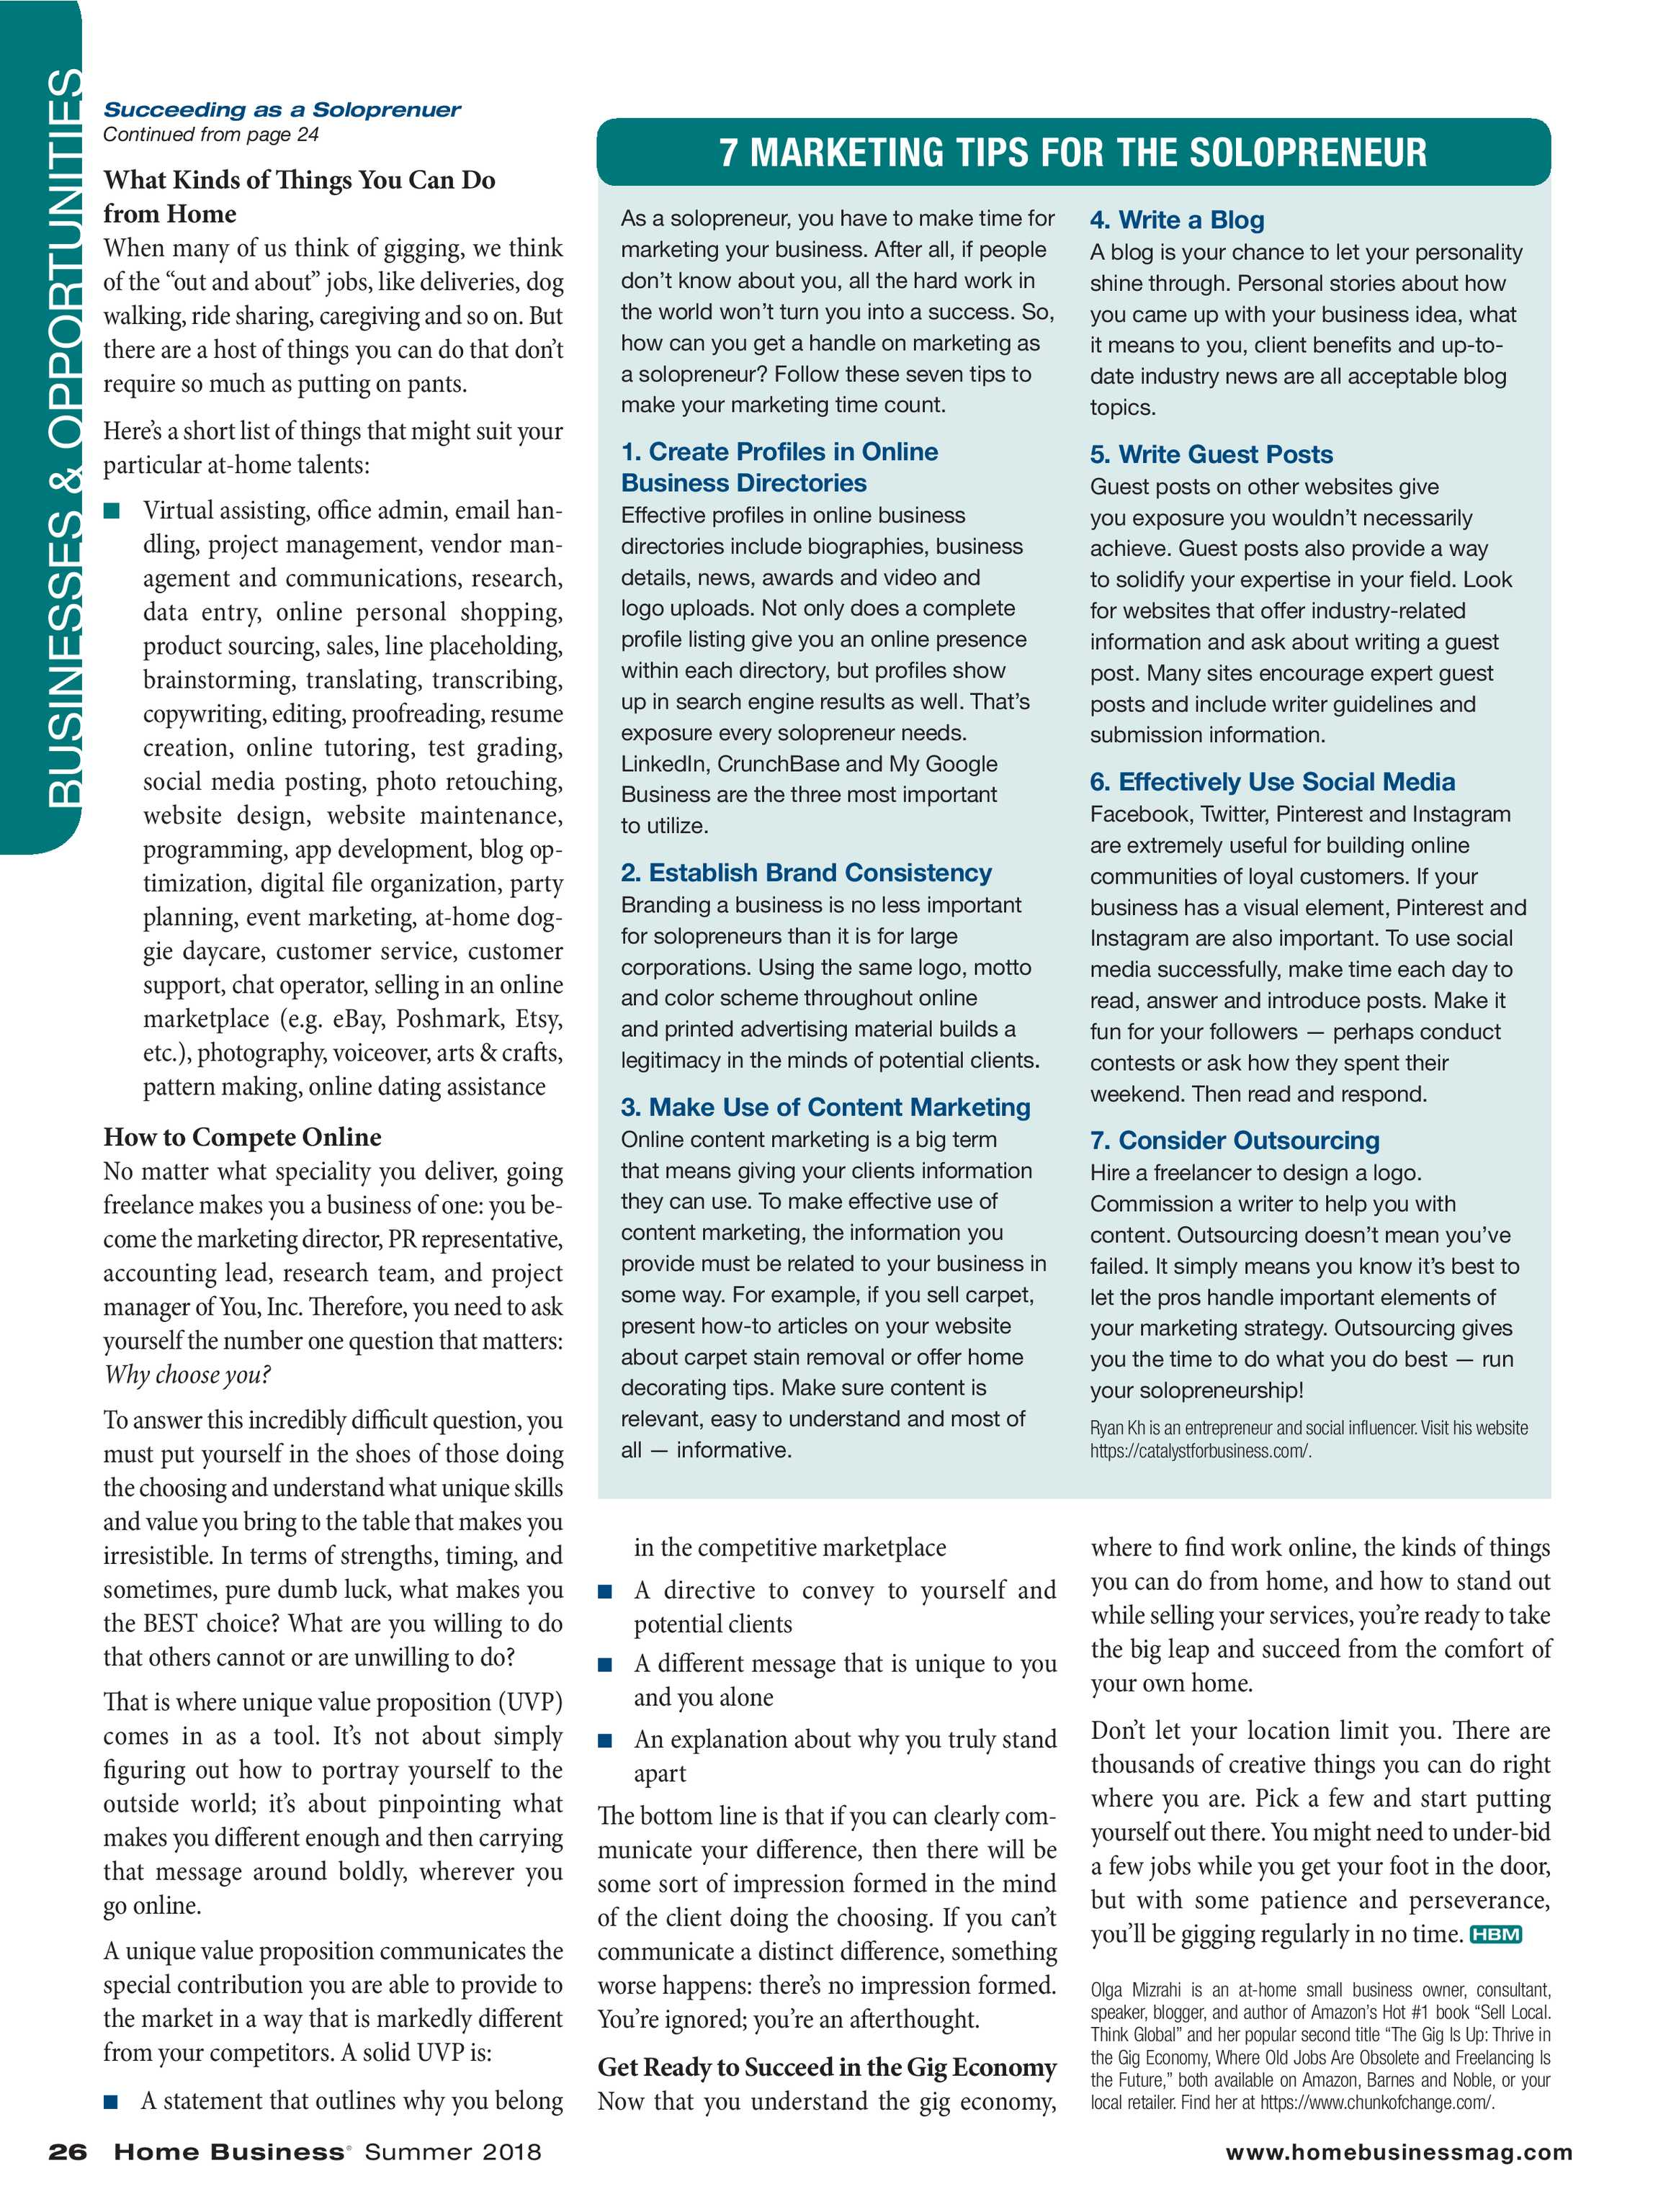 Home Business Magazine - Summer 2018 - page 26